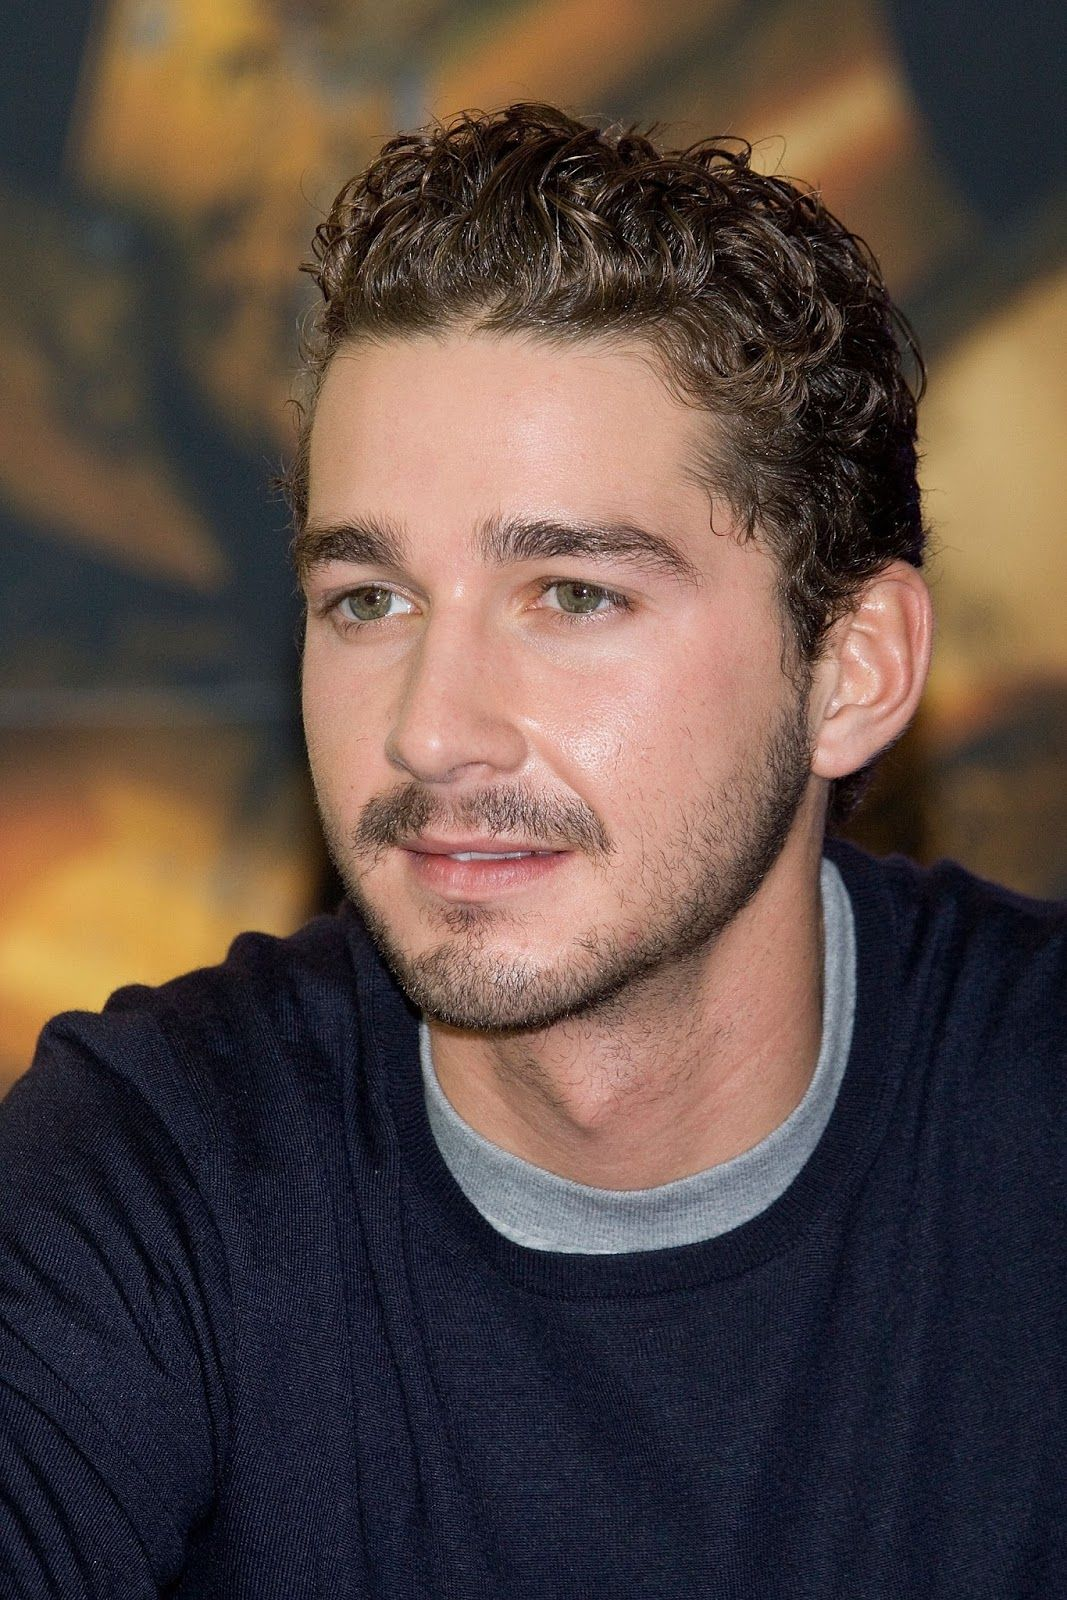 Hd Photos Of Shia Labeouf Megan Fox Promoting Transformers 2 In